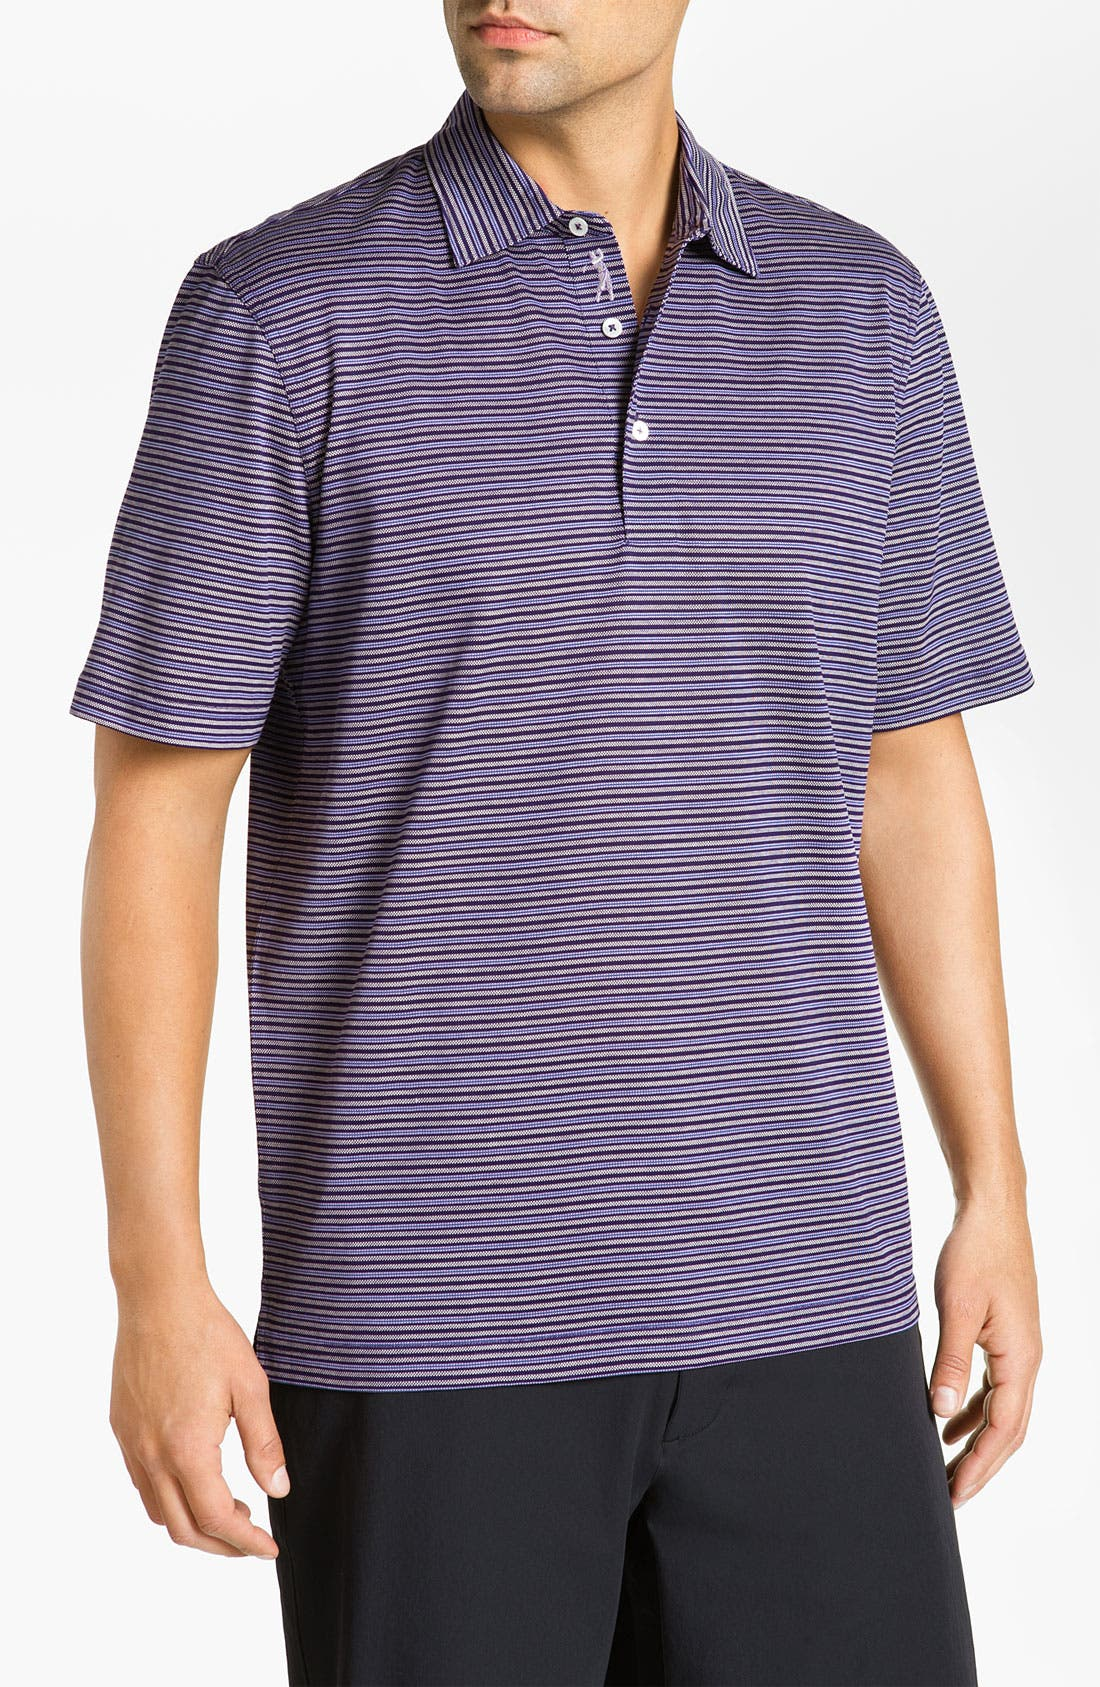 Main Image - Bobby Jones Stripe Piqué Polo